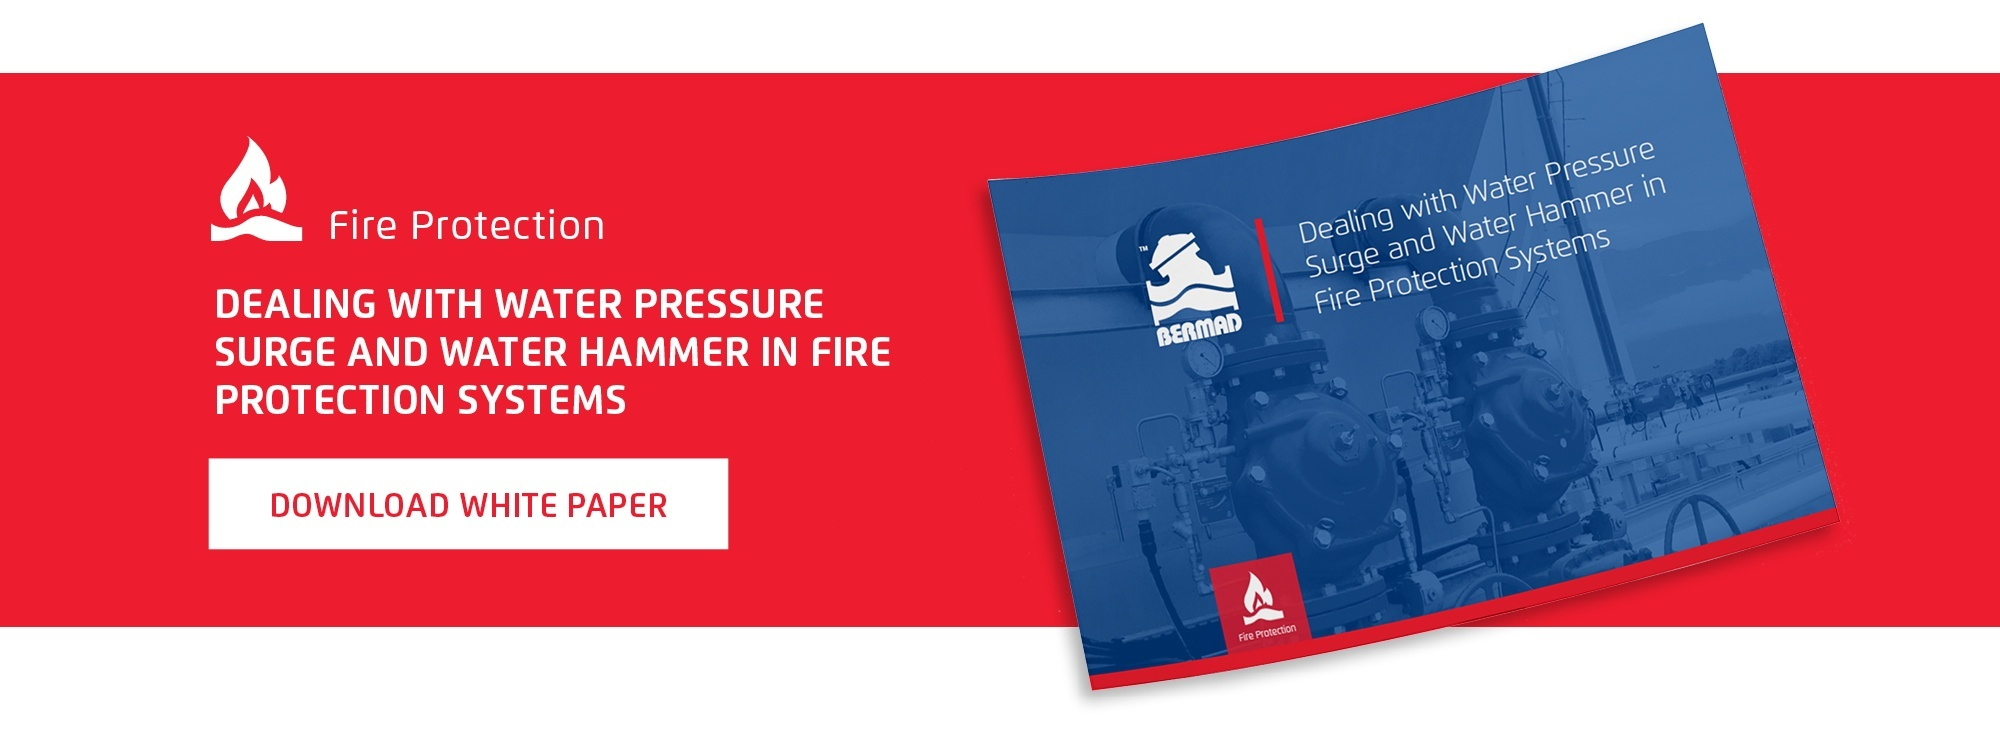 Dealing with water pressure surge and water hammer in fire protection system - white paper